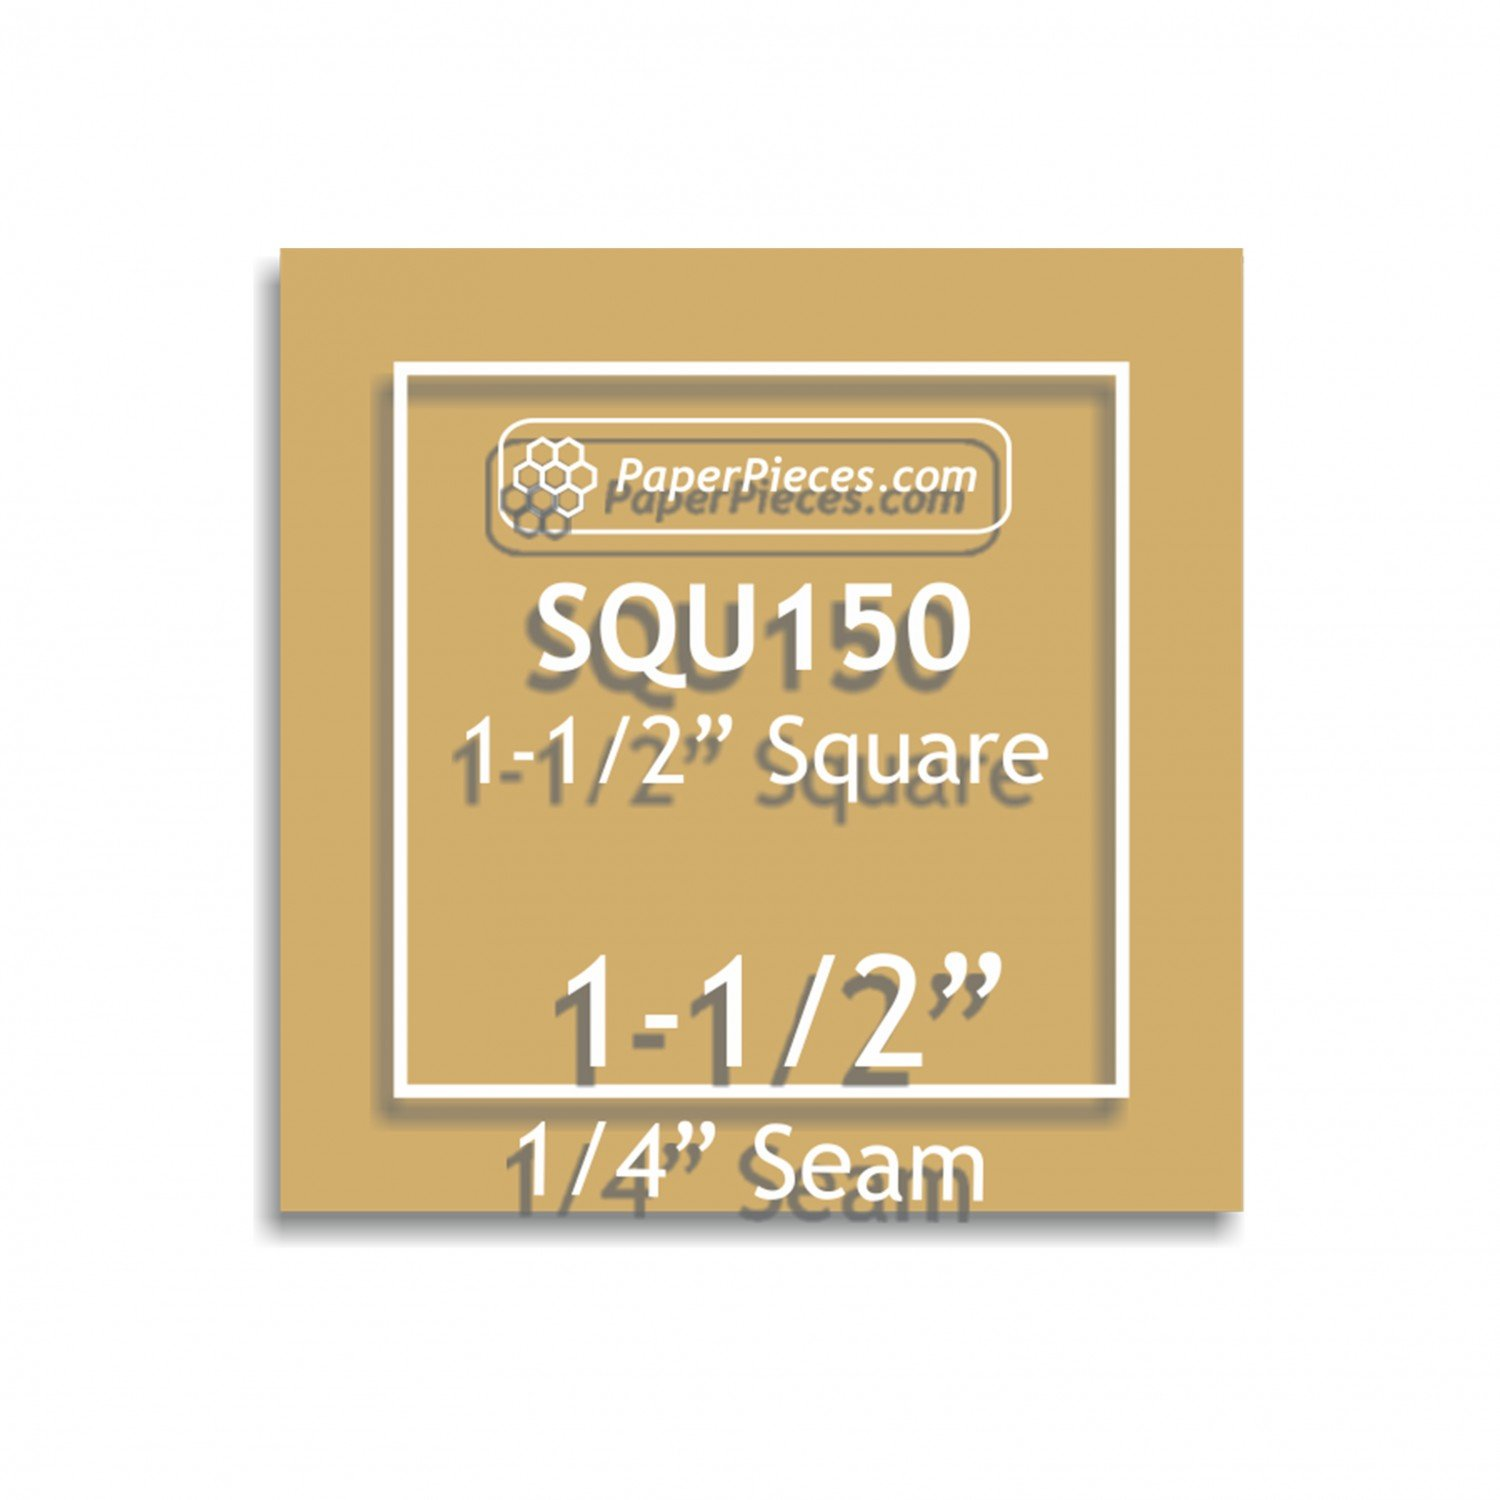 1-1/2 square acrylic template with 1/4 seam allowance